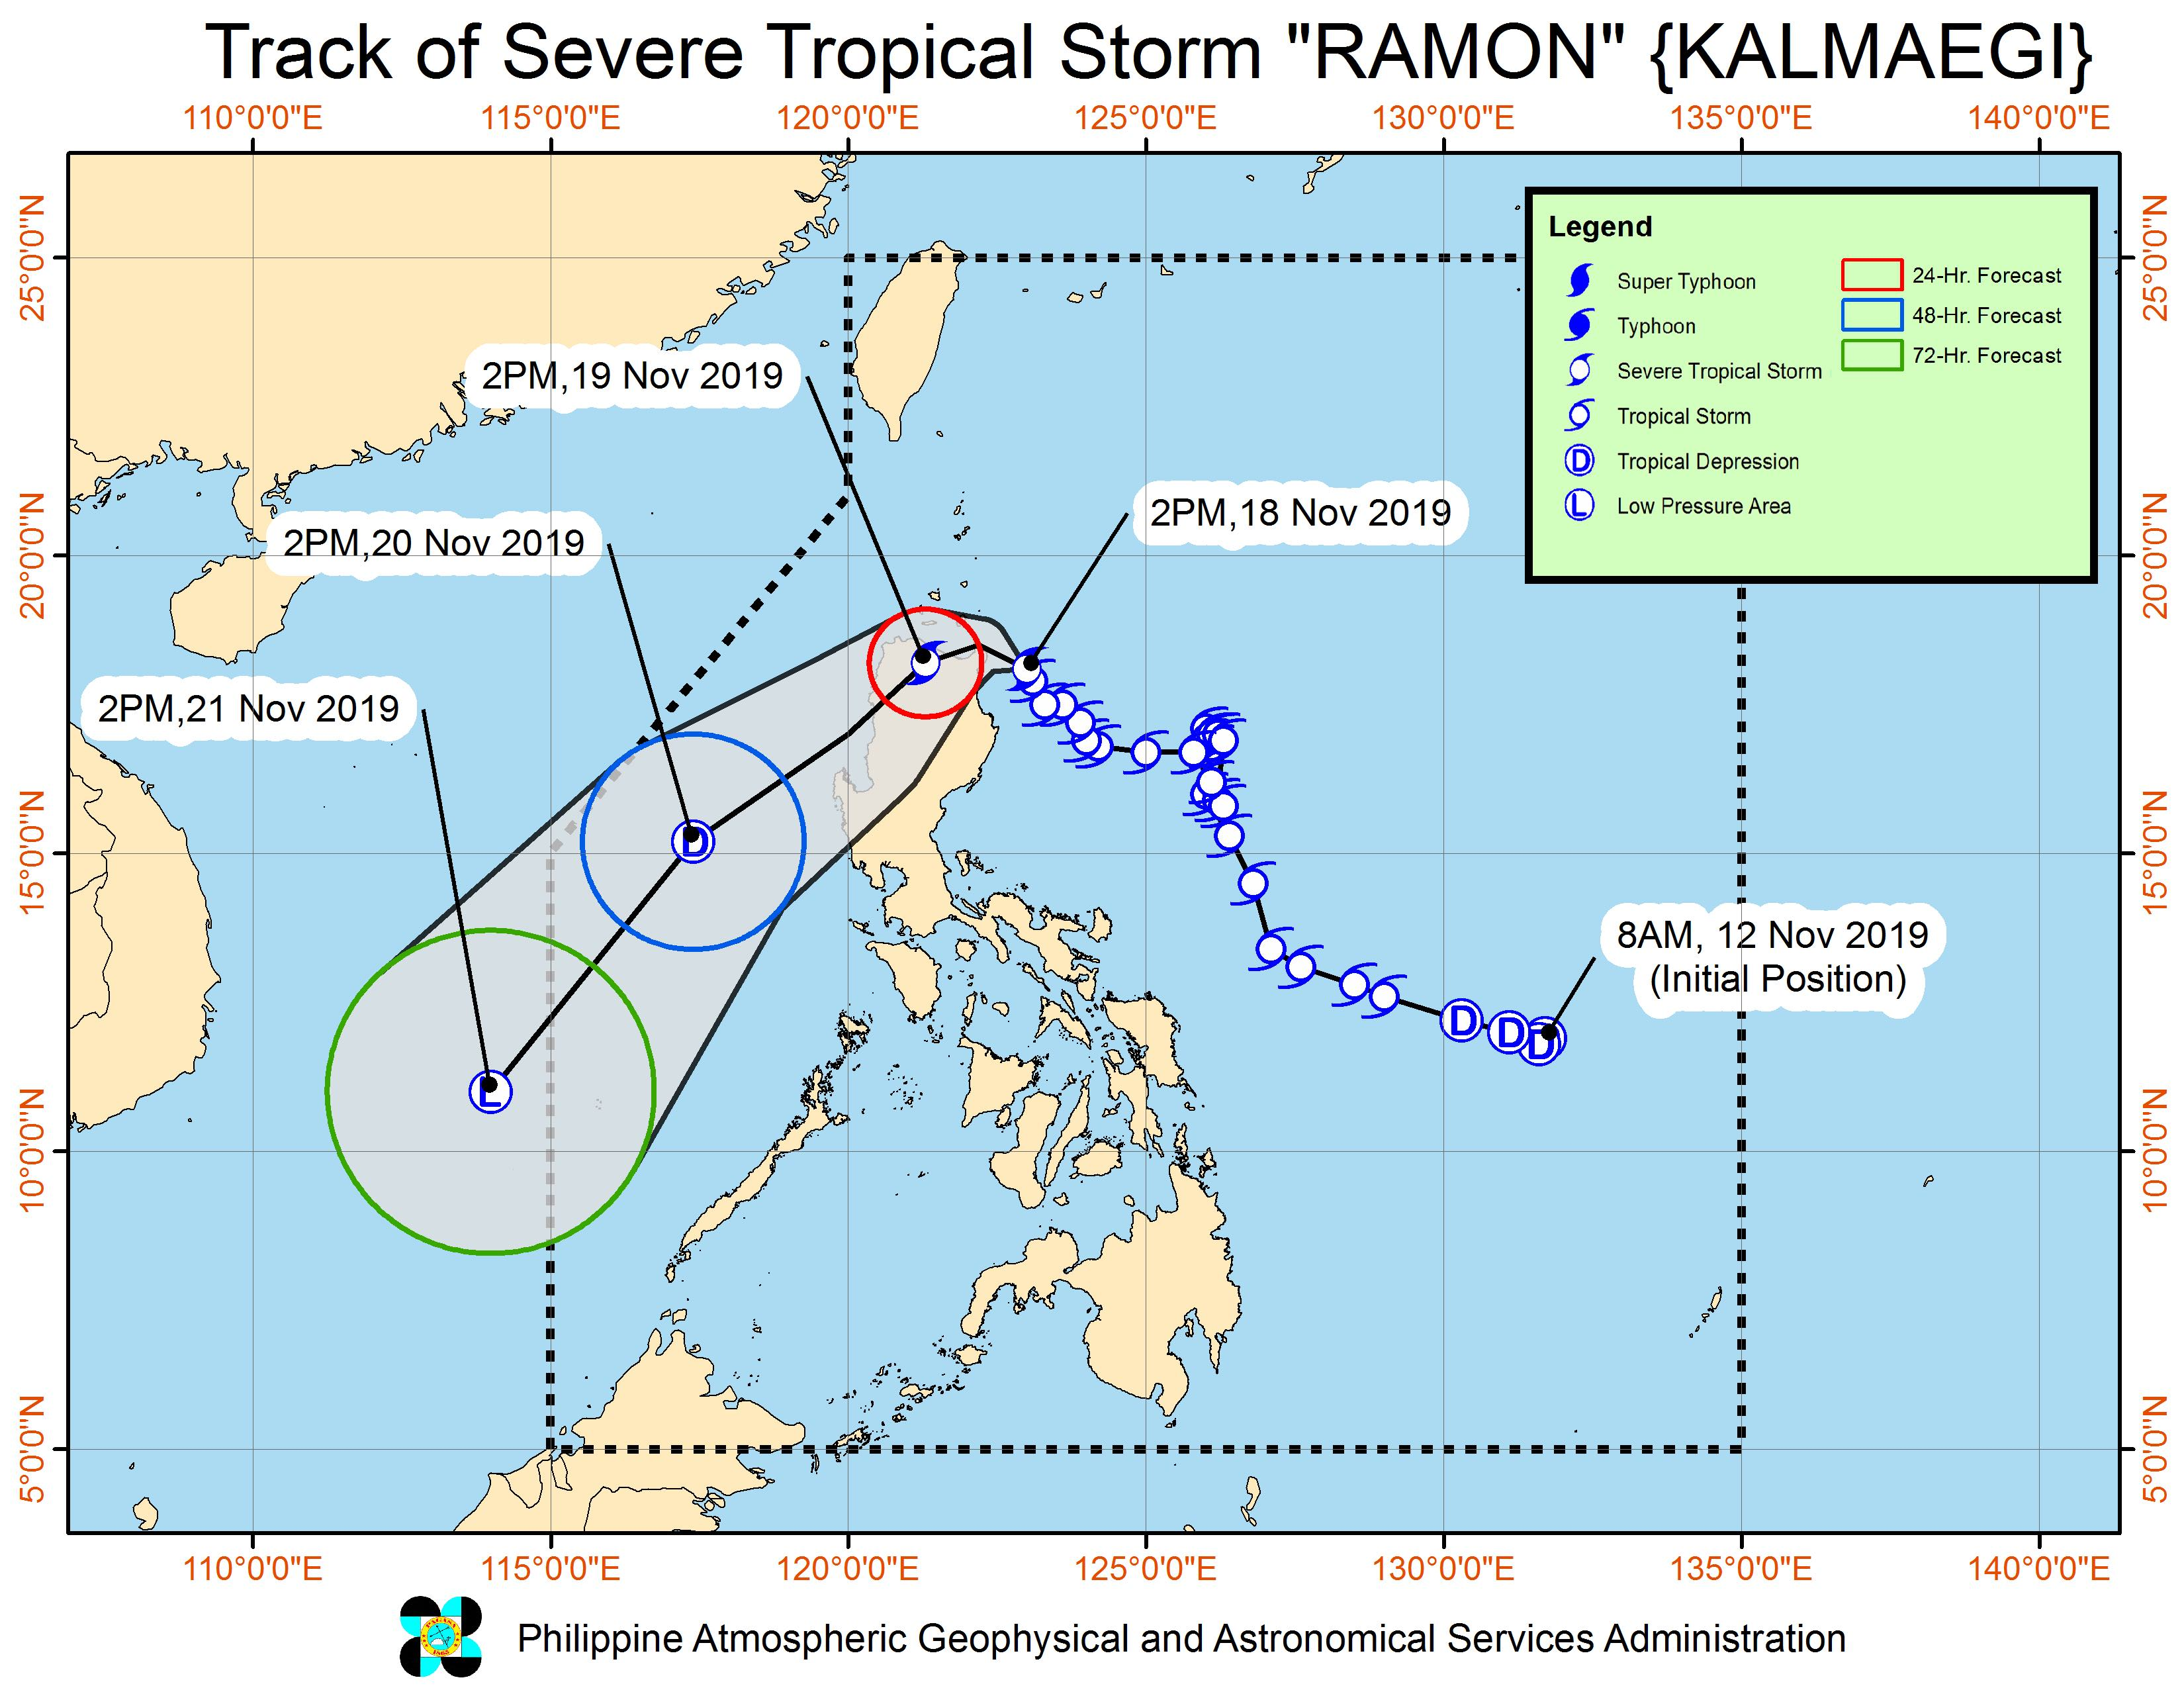 Forecast track of Severe Tropical Storm Ramon (Kalmaegi) as of November 18, 2019, 5 pm. Image from PAGASA